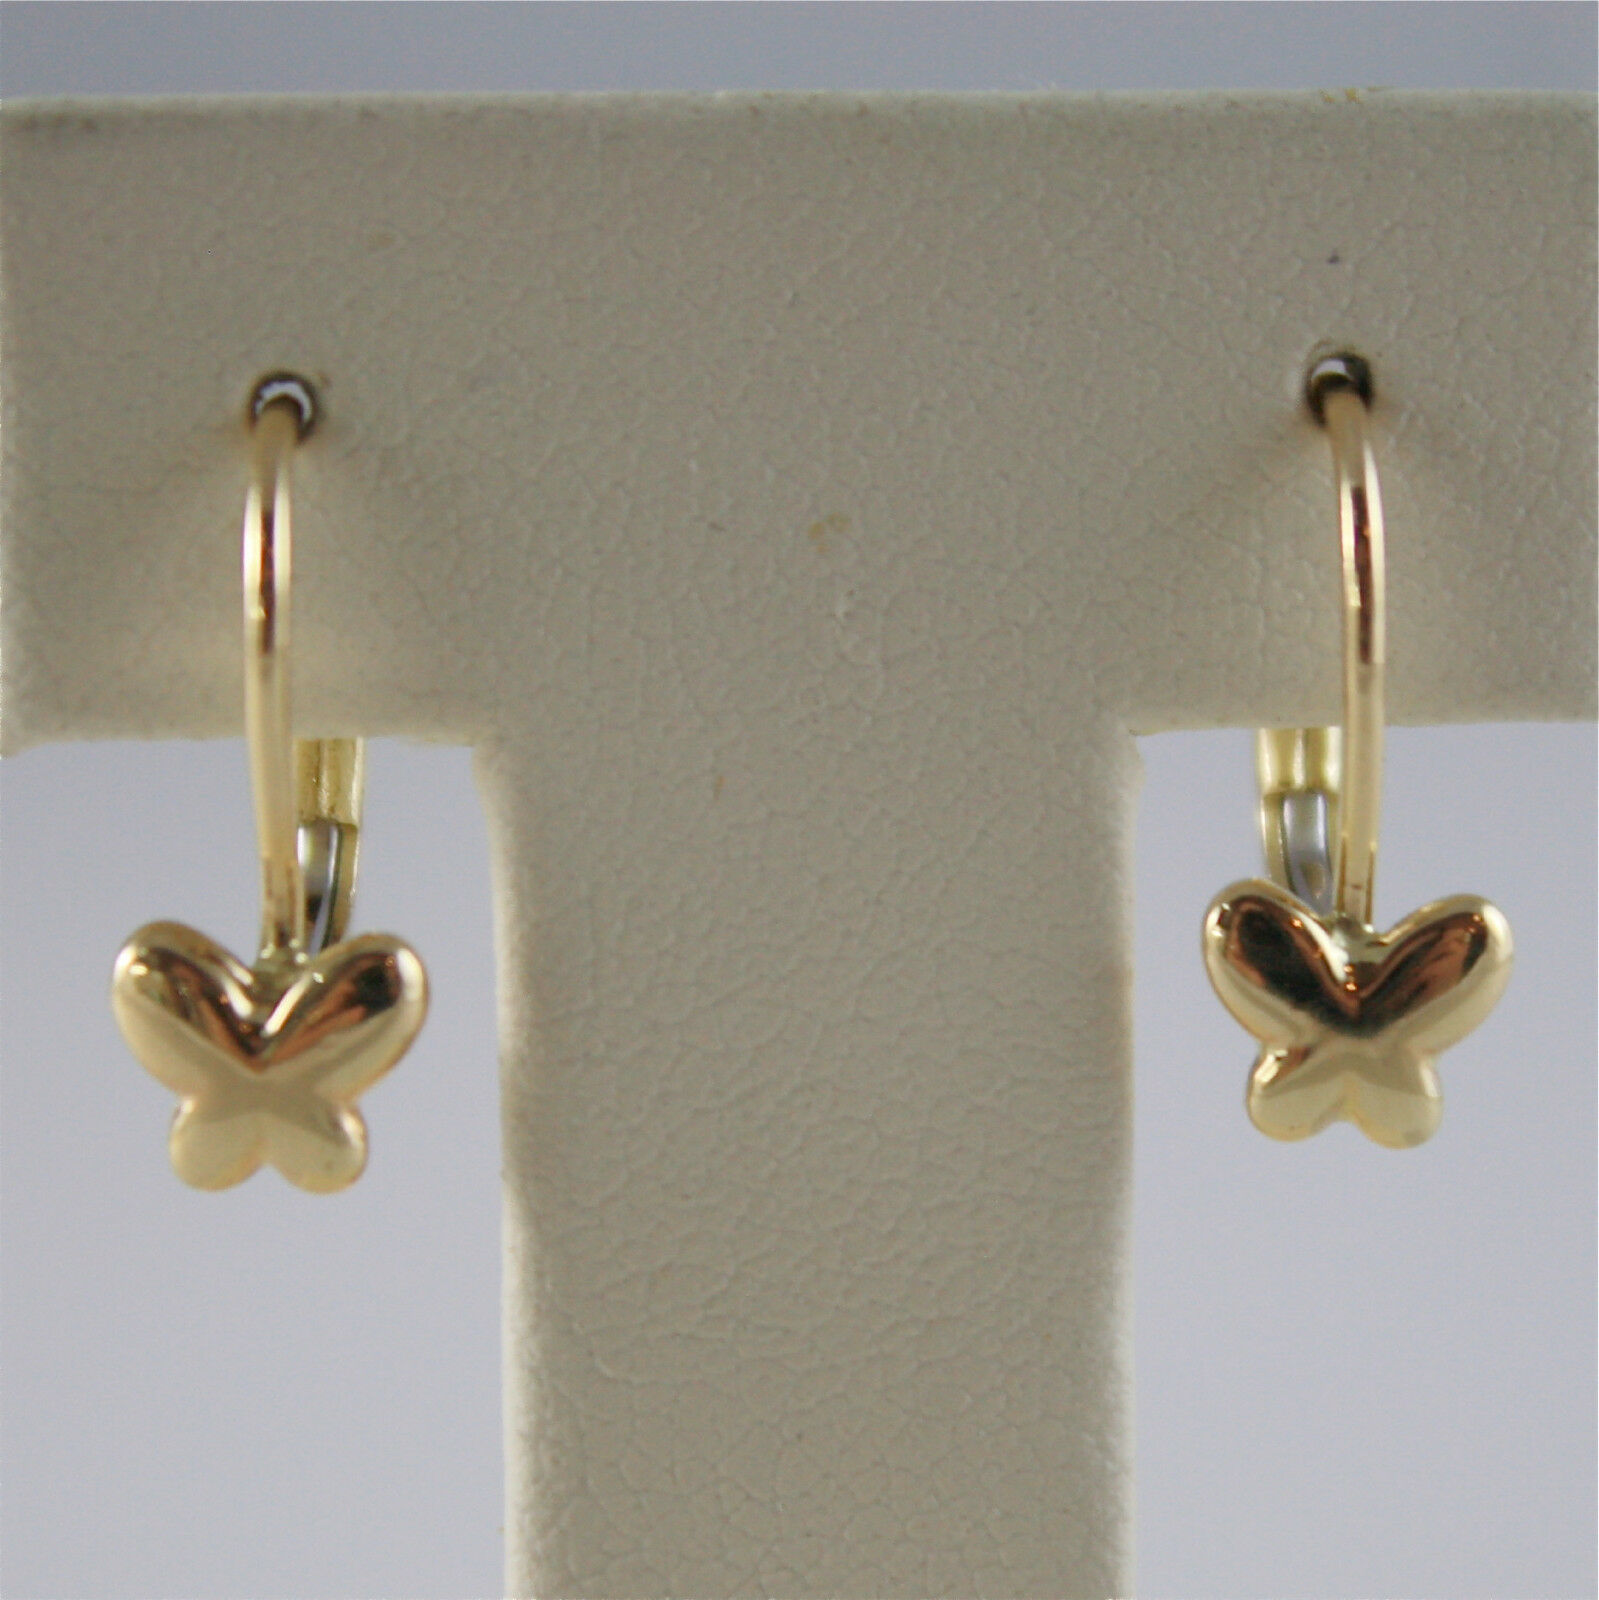 SOLID 18K YELLOW GOLD PENDANT EARRINGS WITH BUTTERFLIES LEVERBACK, MADE IN ITALY